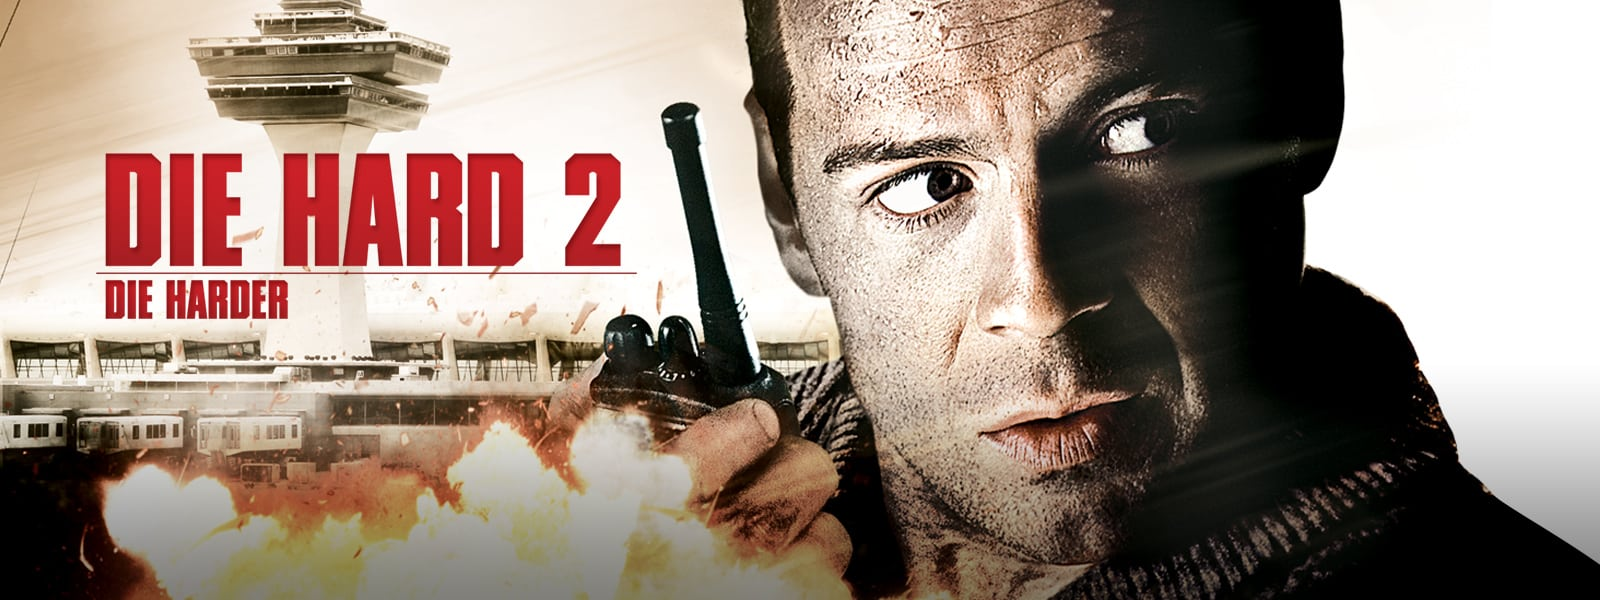 Top 20 Action Movies of the 1990s - Miguel Edition - Die Hard - The Guy Blog